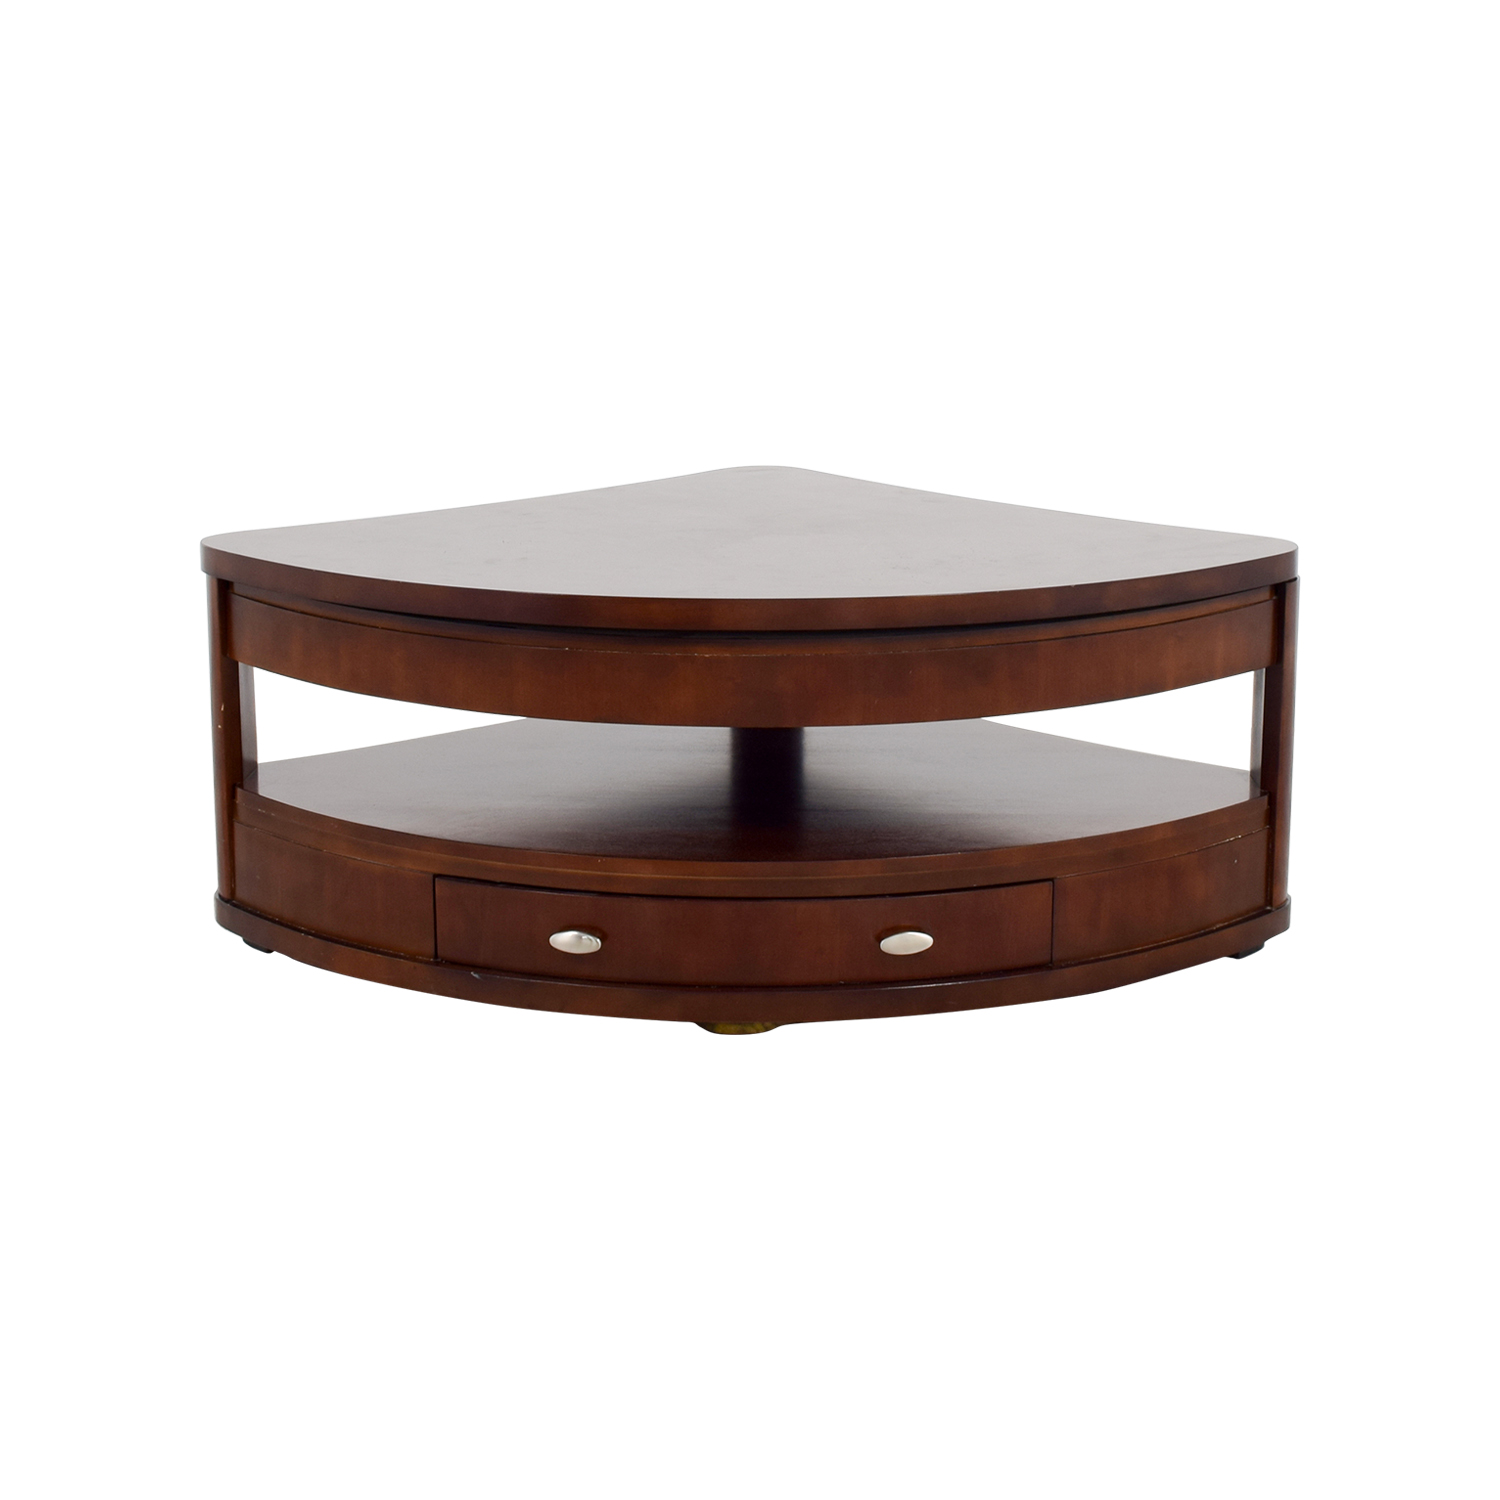 Triangle Coffee Table Wood.90 Off Triangular Rounded Lift Top Coffee Table Tables